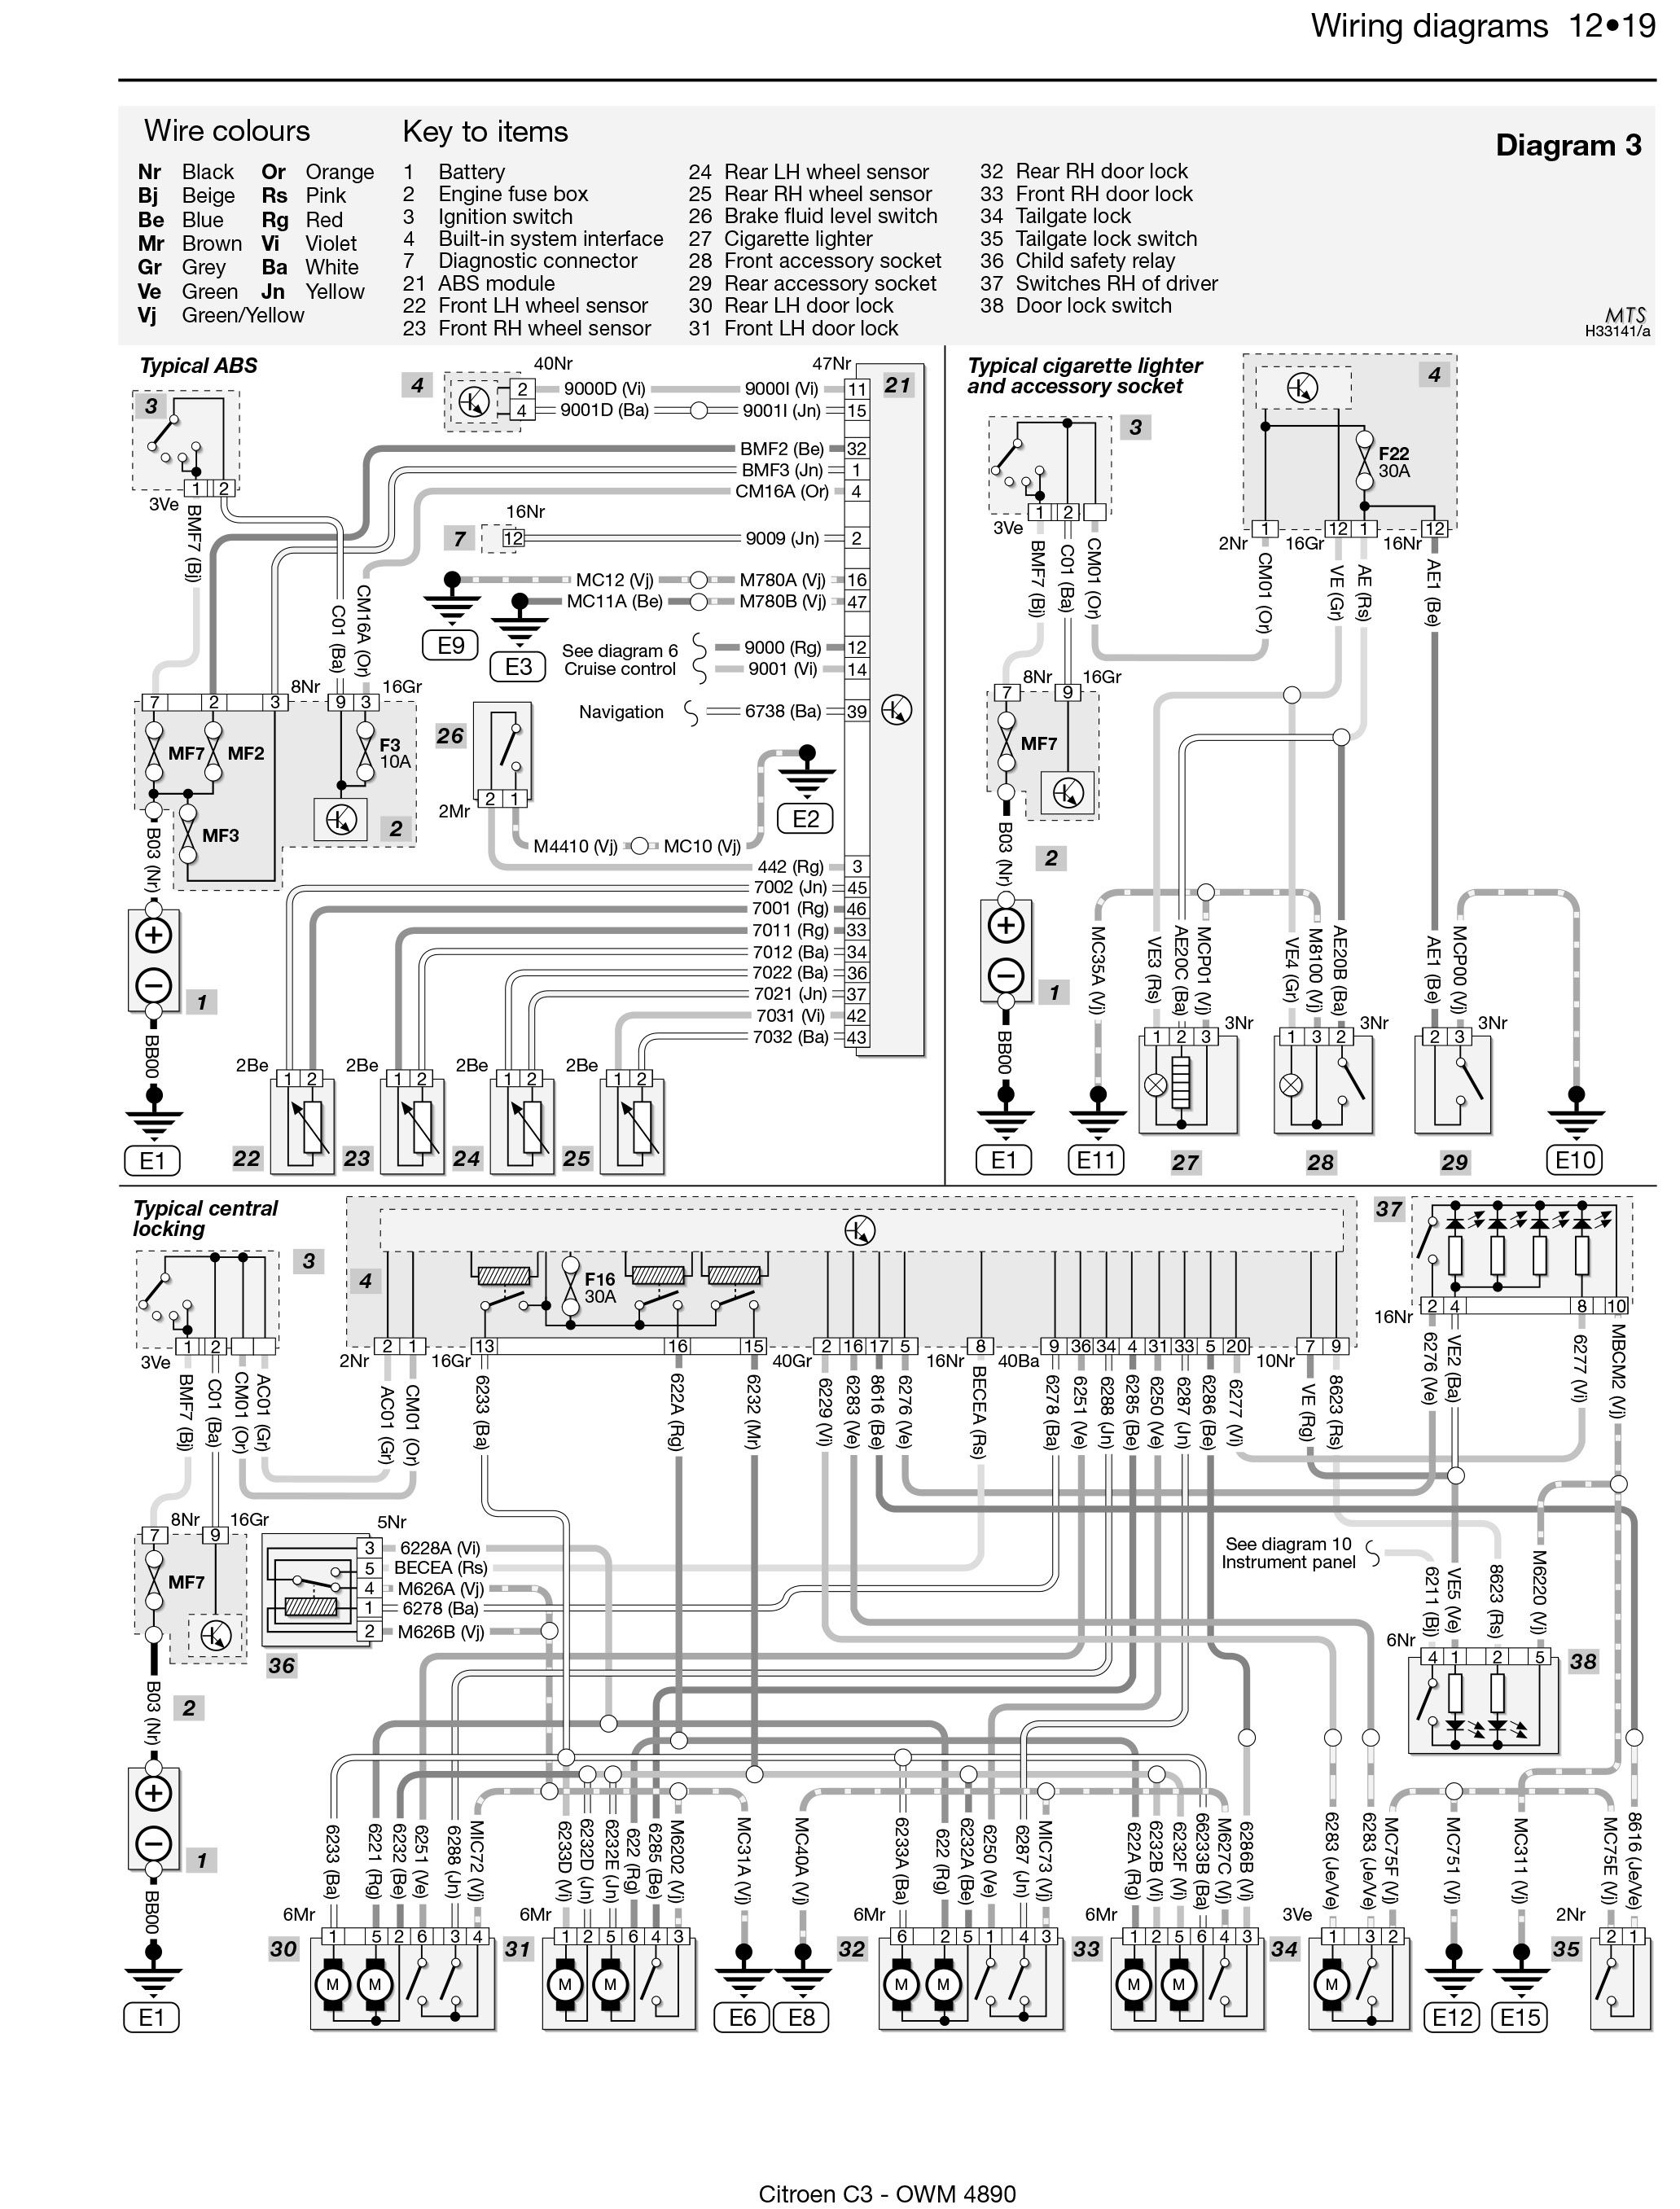 [DIAGRAM] Fiat 500 Haynes Wiring Diagram FULL Version HD